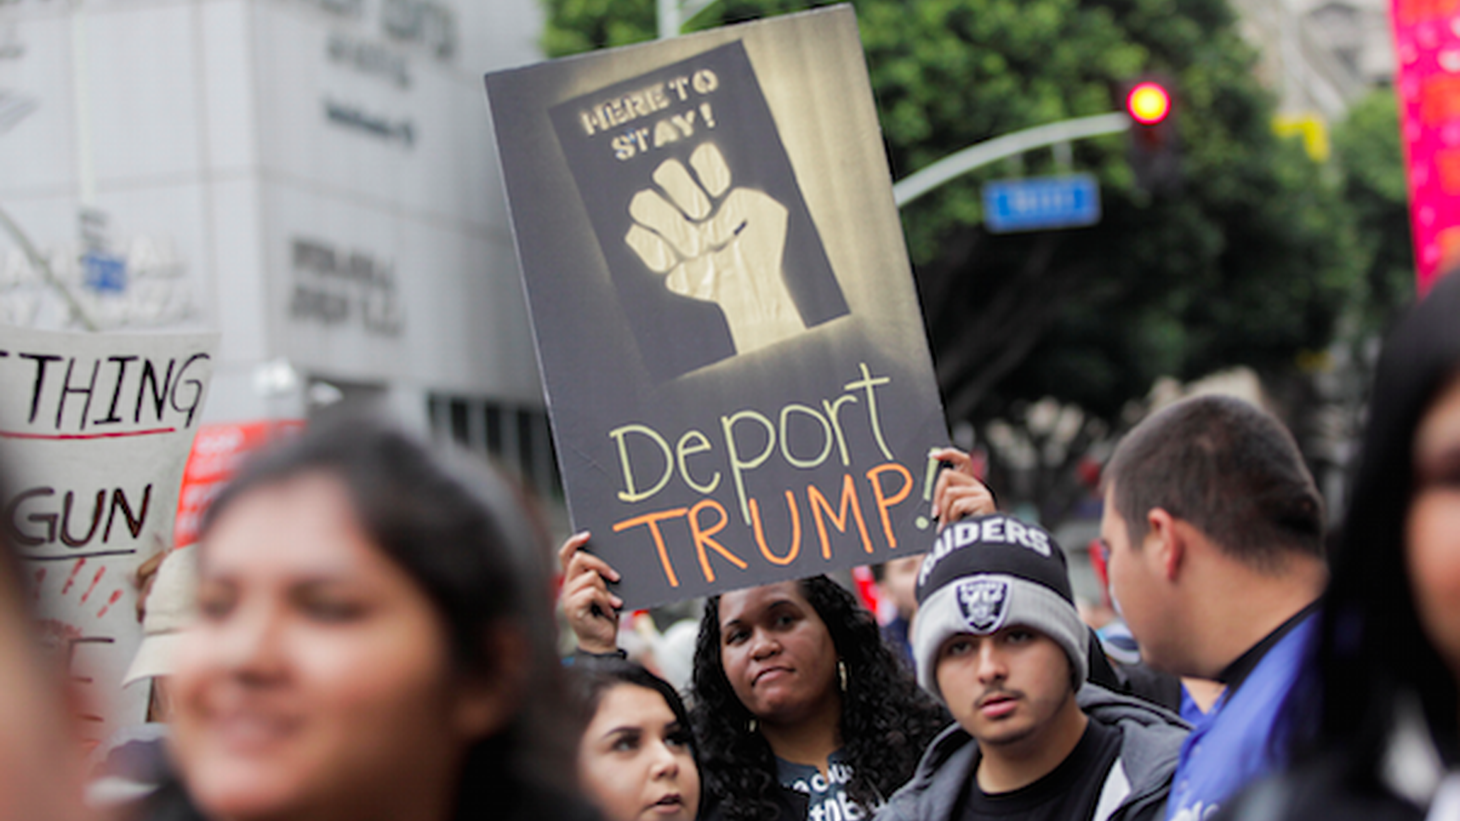 In some cases, when Customs and Border Patrol agents catch an immigrant wanted for a crime, they're deporting the suspect back to their home countries.